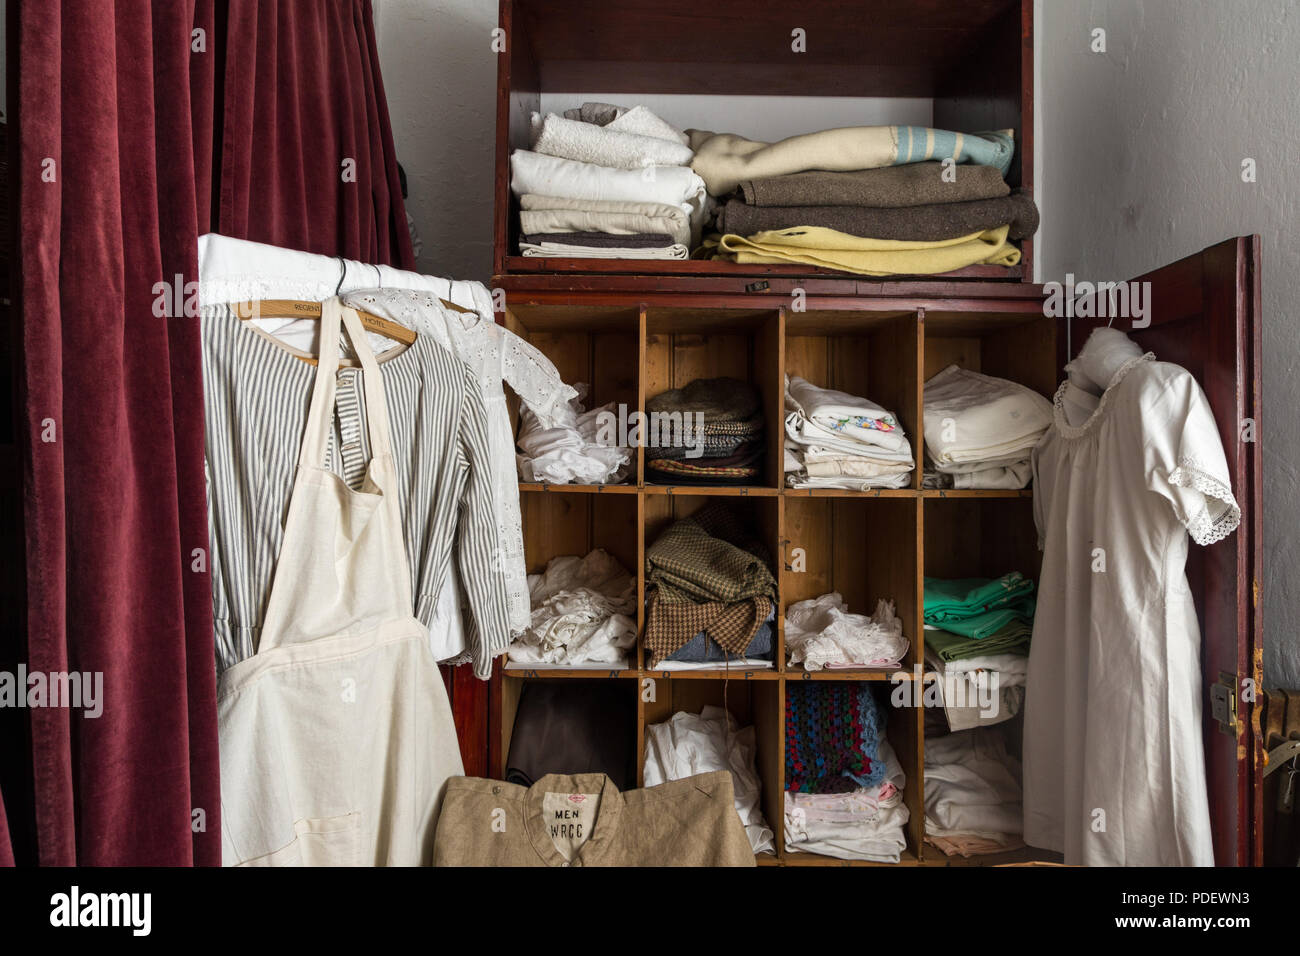 Linen cupboard with typical bedding and clothing from the ...